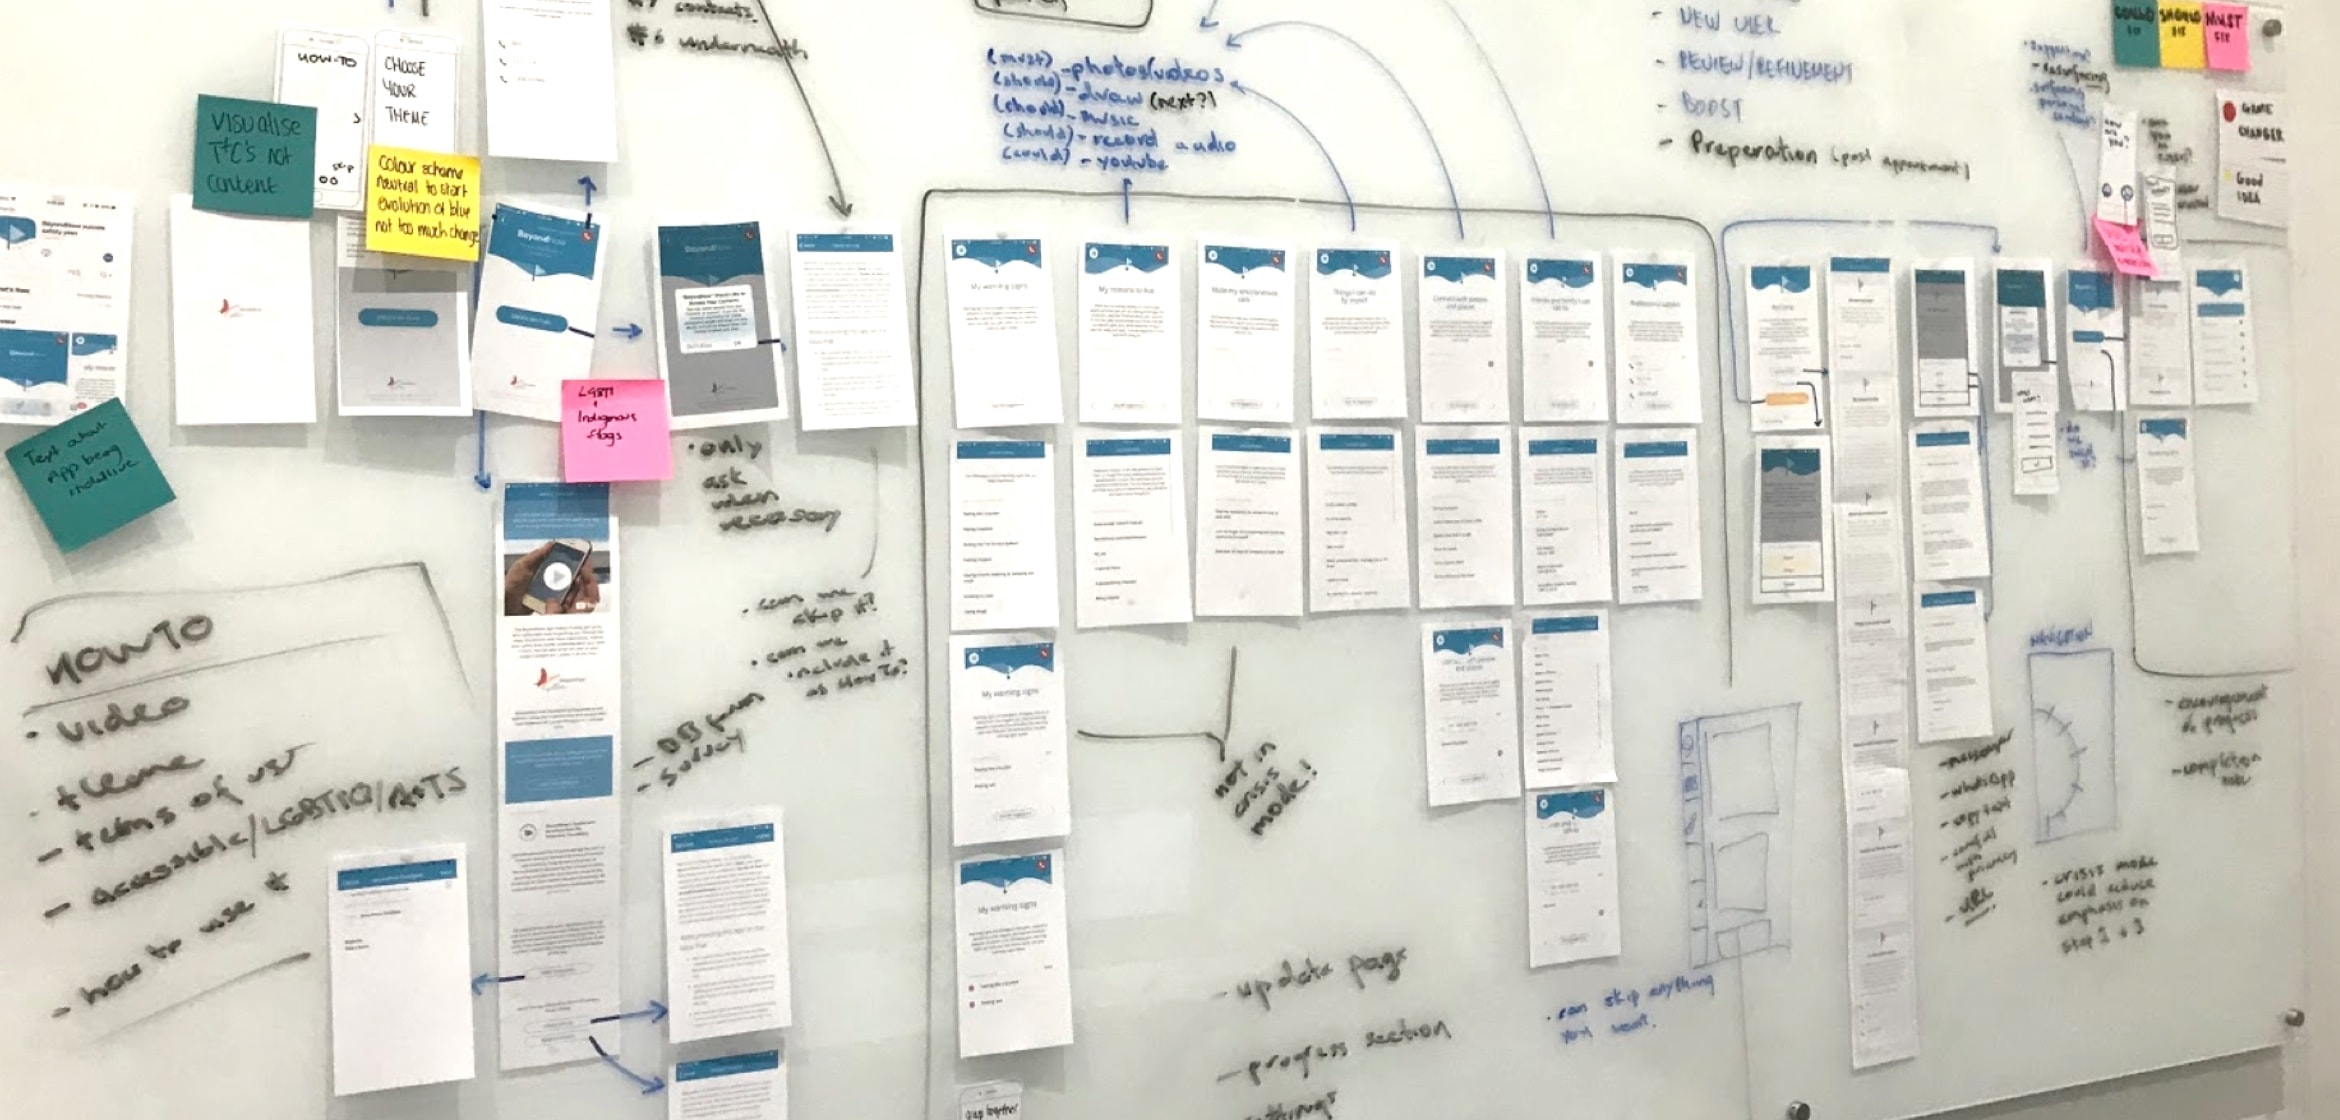 An image of lots of notes on a whiteboard